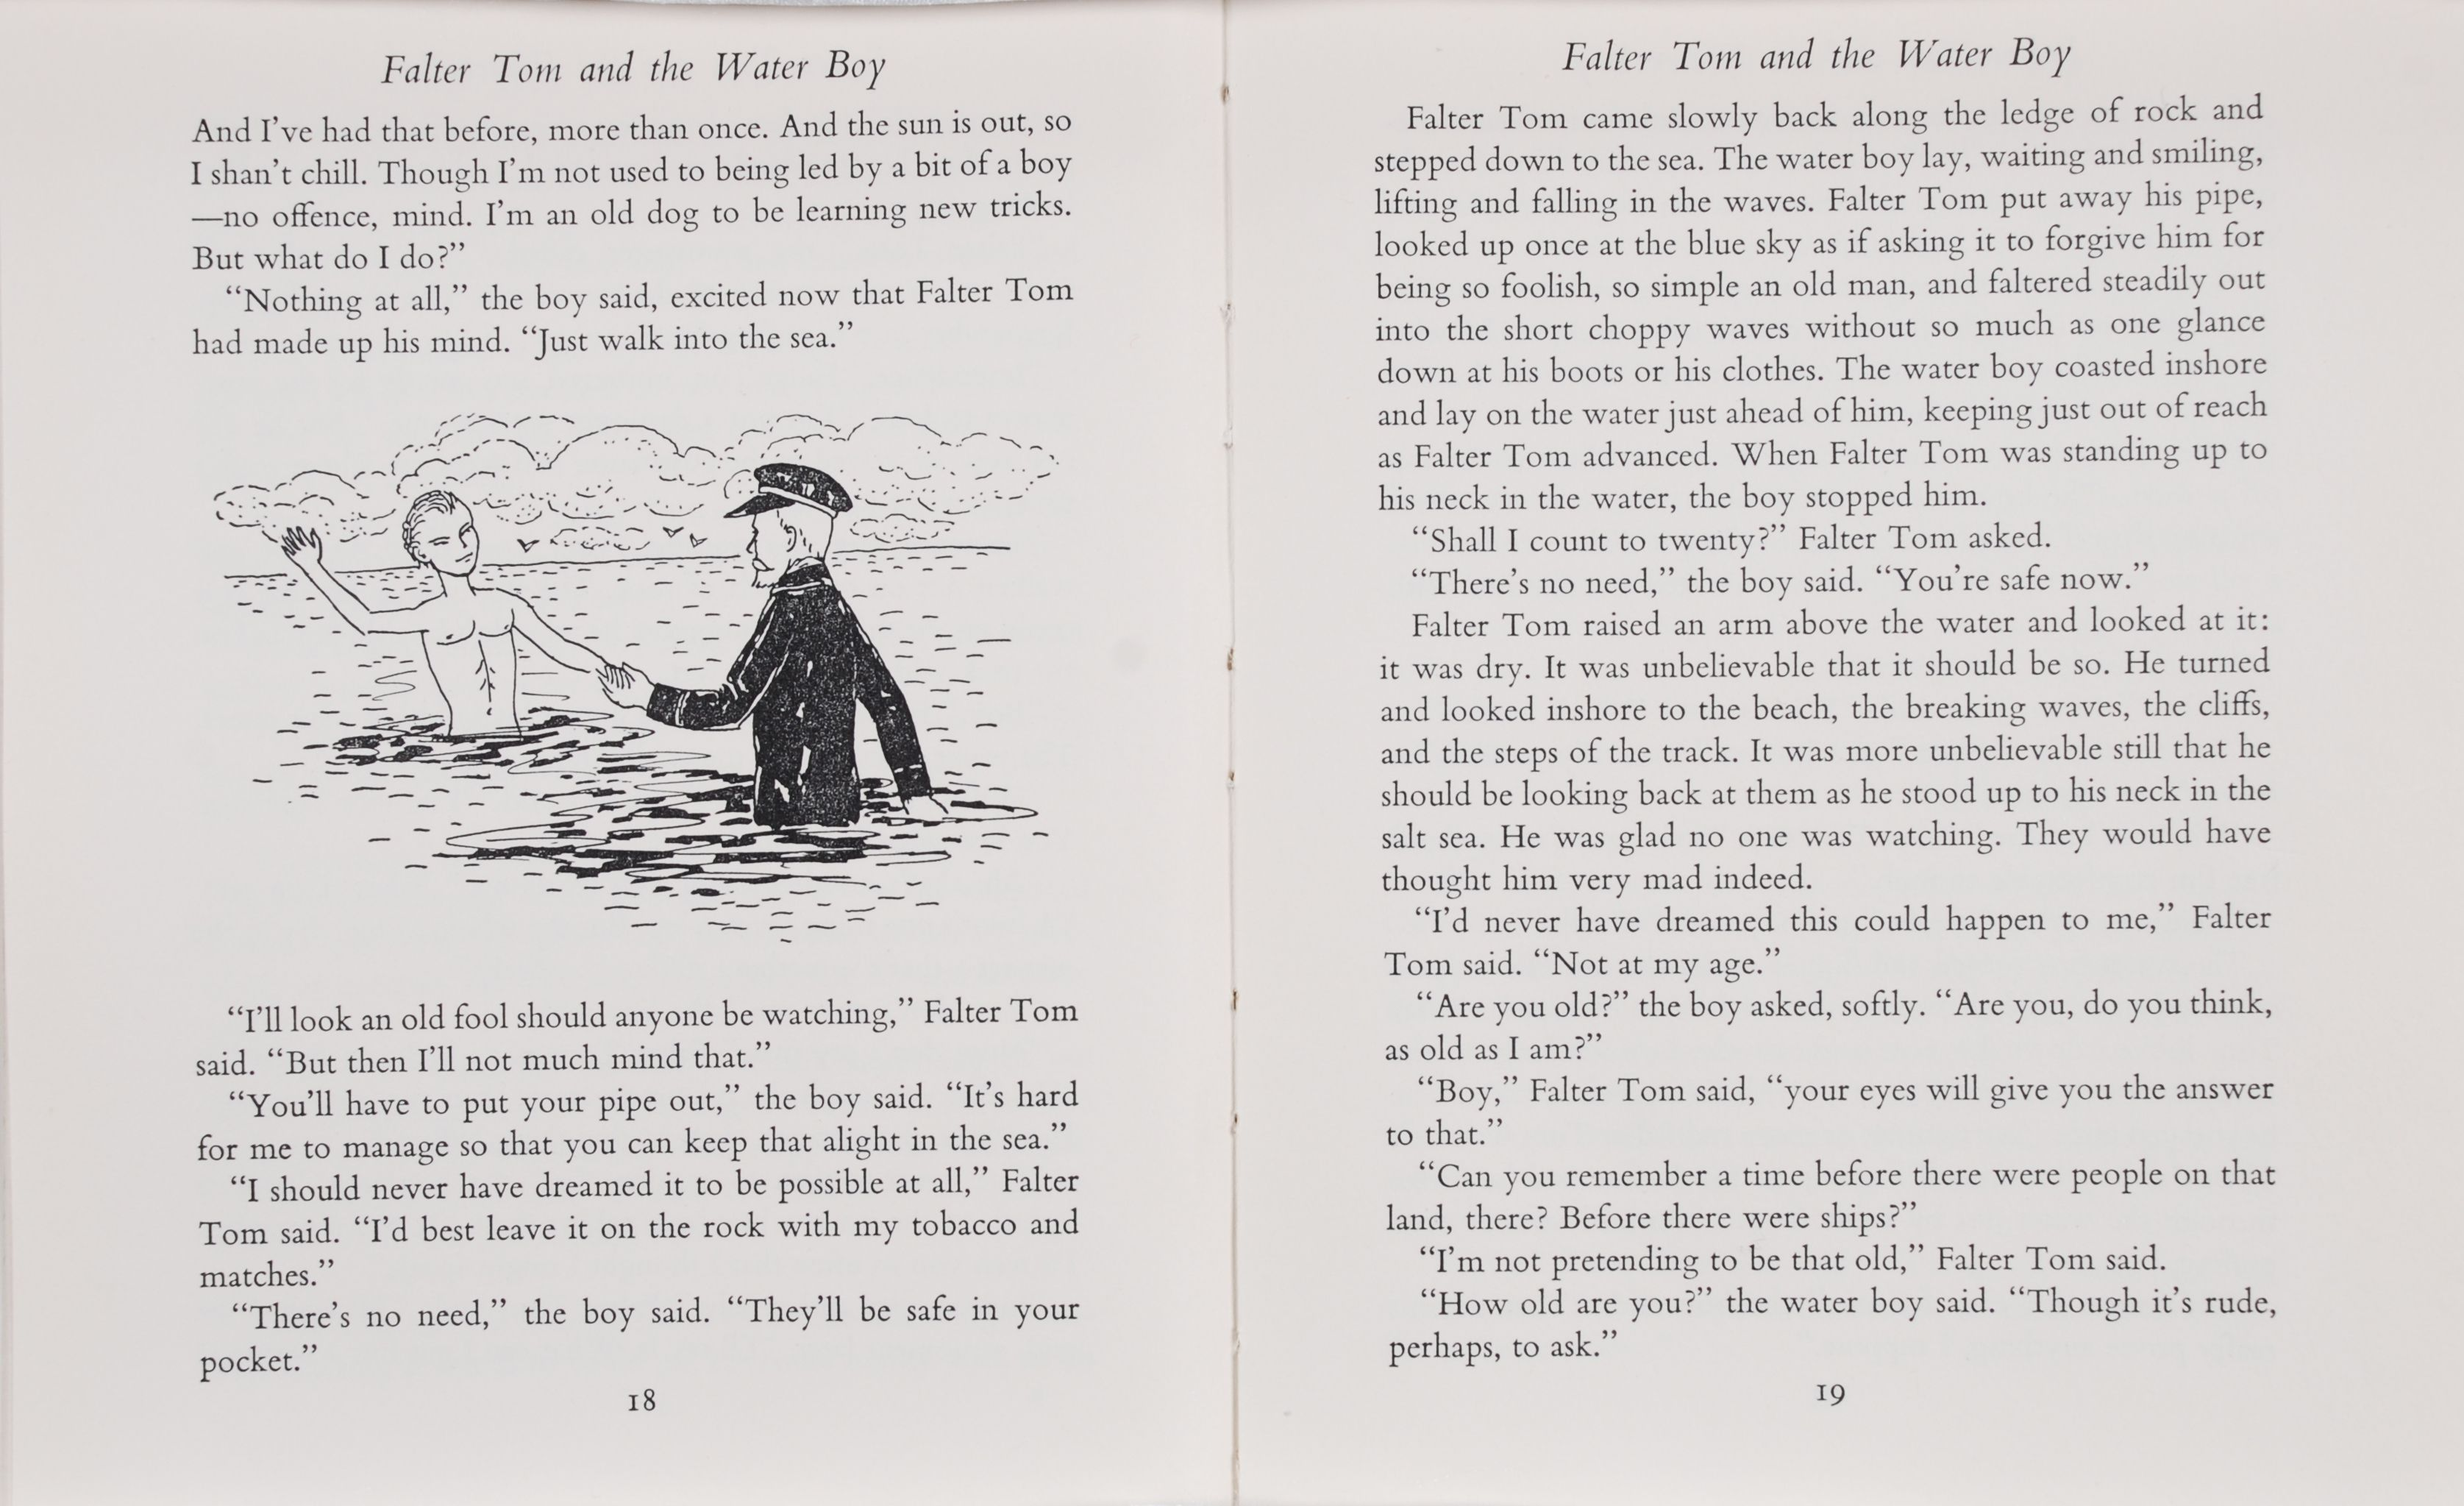 Maurice Duggan.  Falter Tom and the Water Boy.  London: Faber and Faber; New Zealand: Paul's Book Arcade, 1958